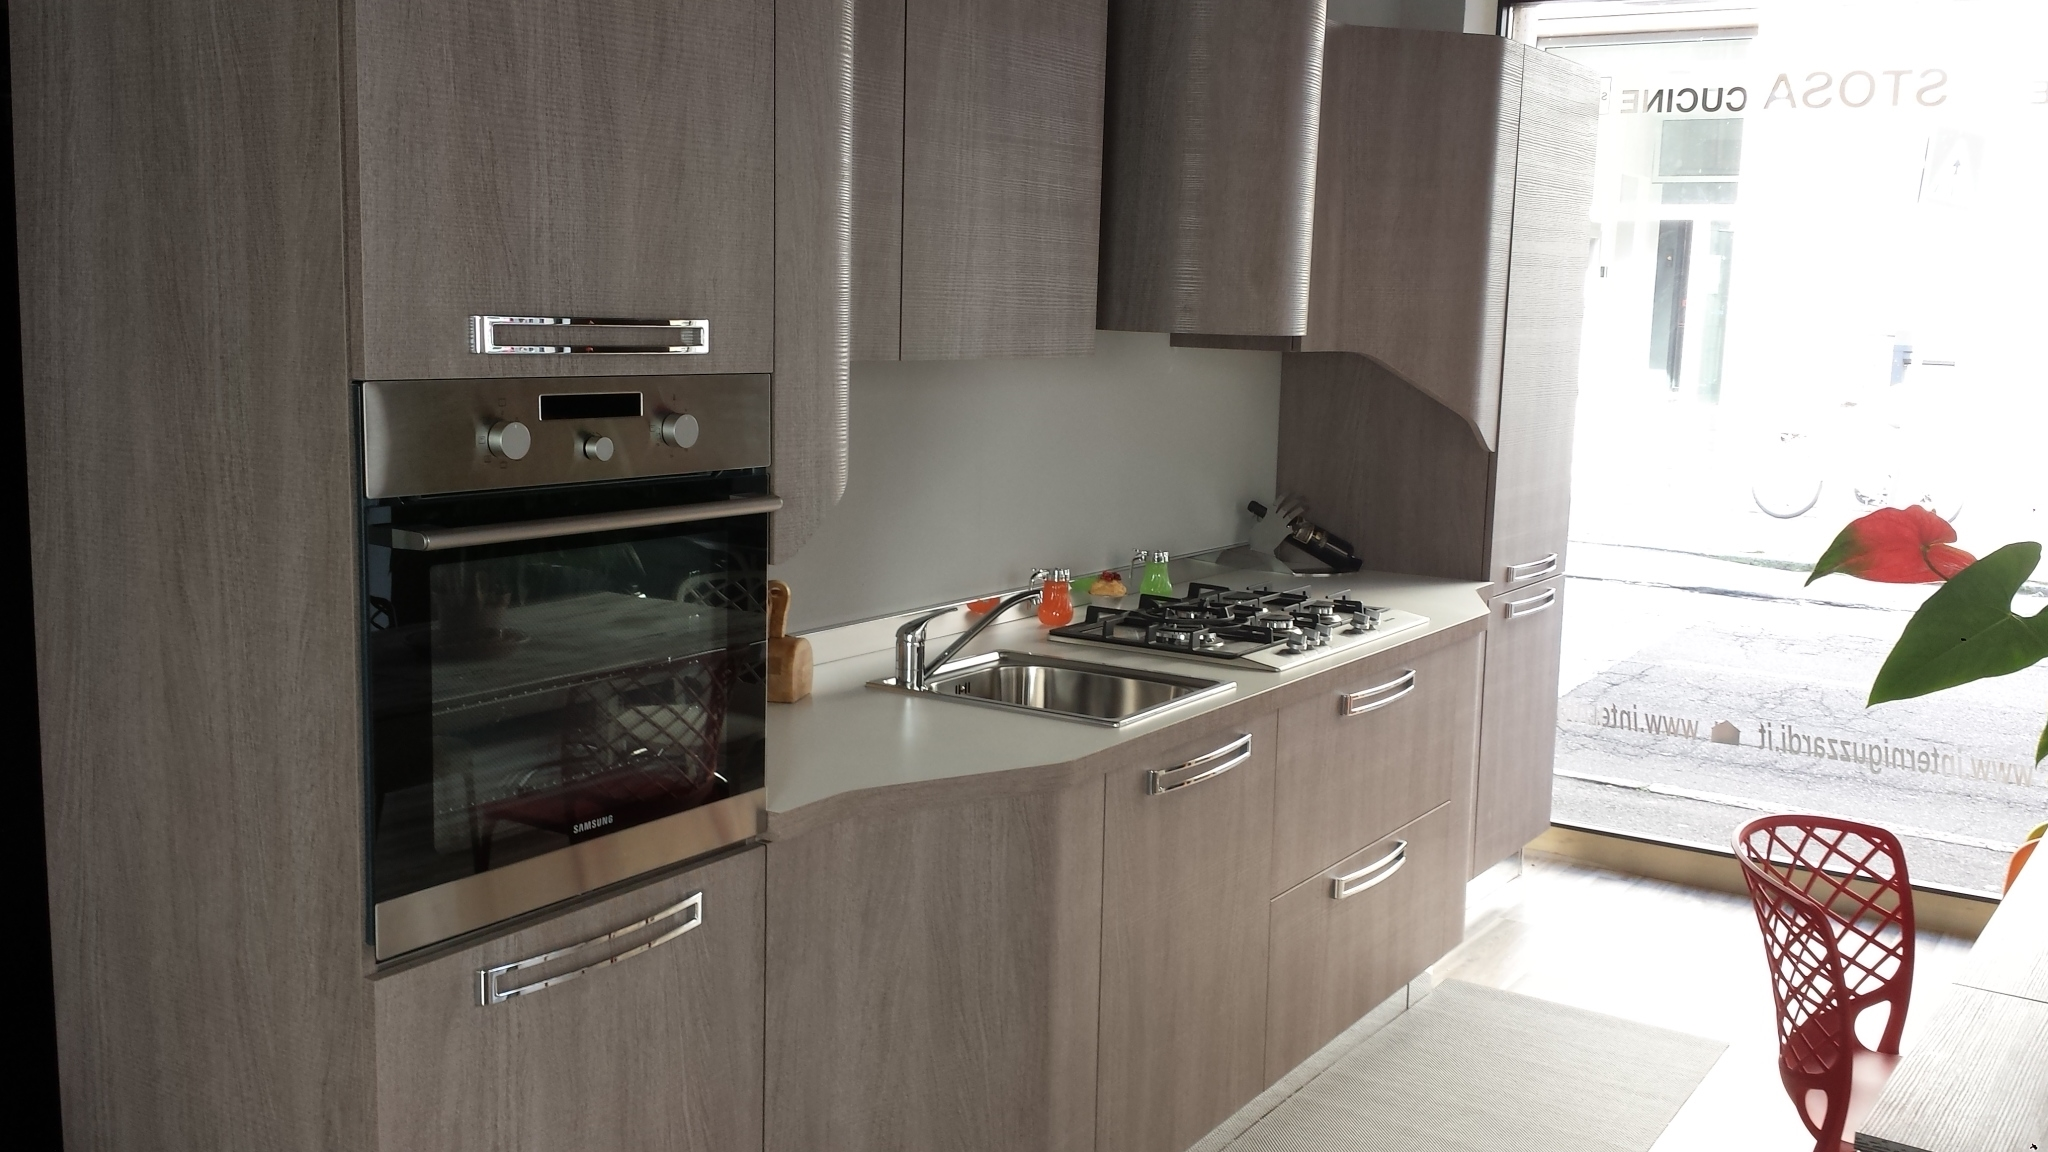 Cucina stosa milly completa di elettrodomestici cucine a prezzi scontati - Cucina stosa milly ...